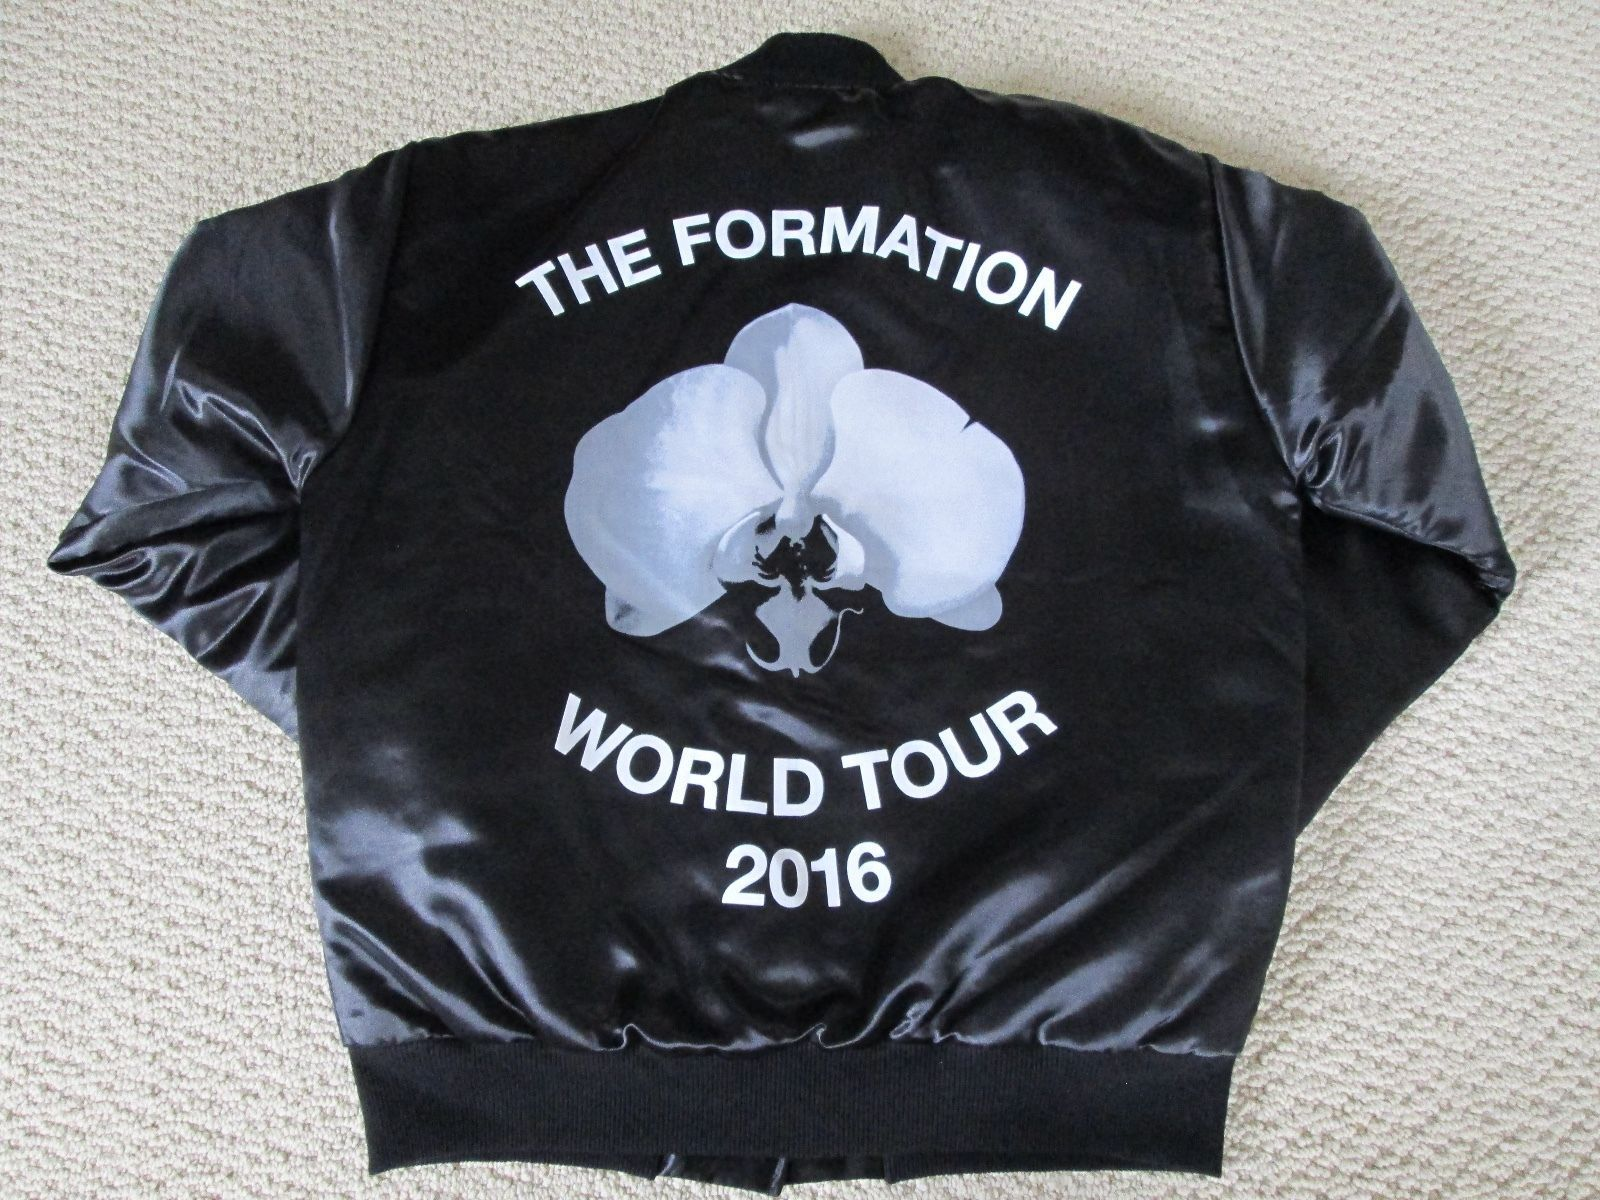 a40b4e029fac3 New Authentic Beyonce Formation World Tour Merch Orchid Black Bomber Jacket  Sz S…